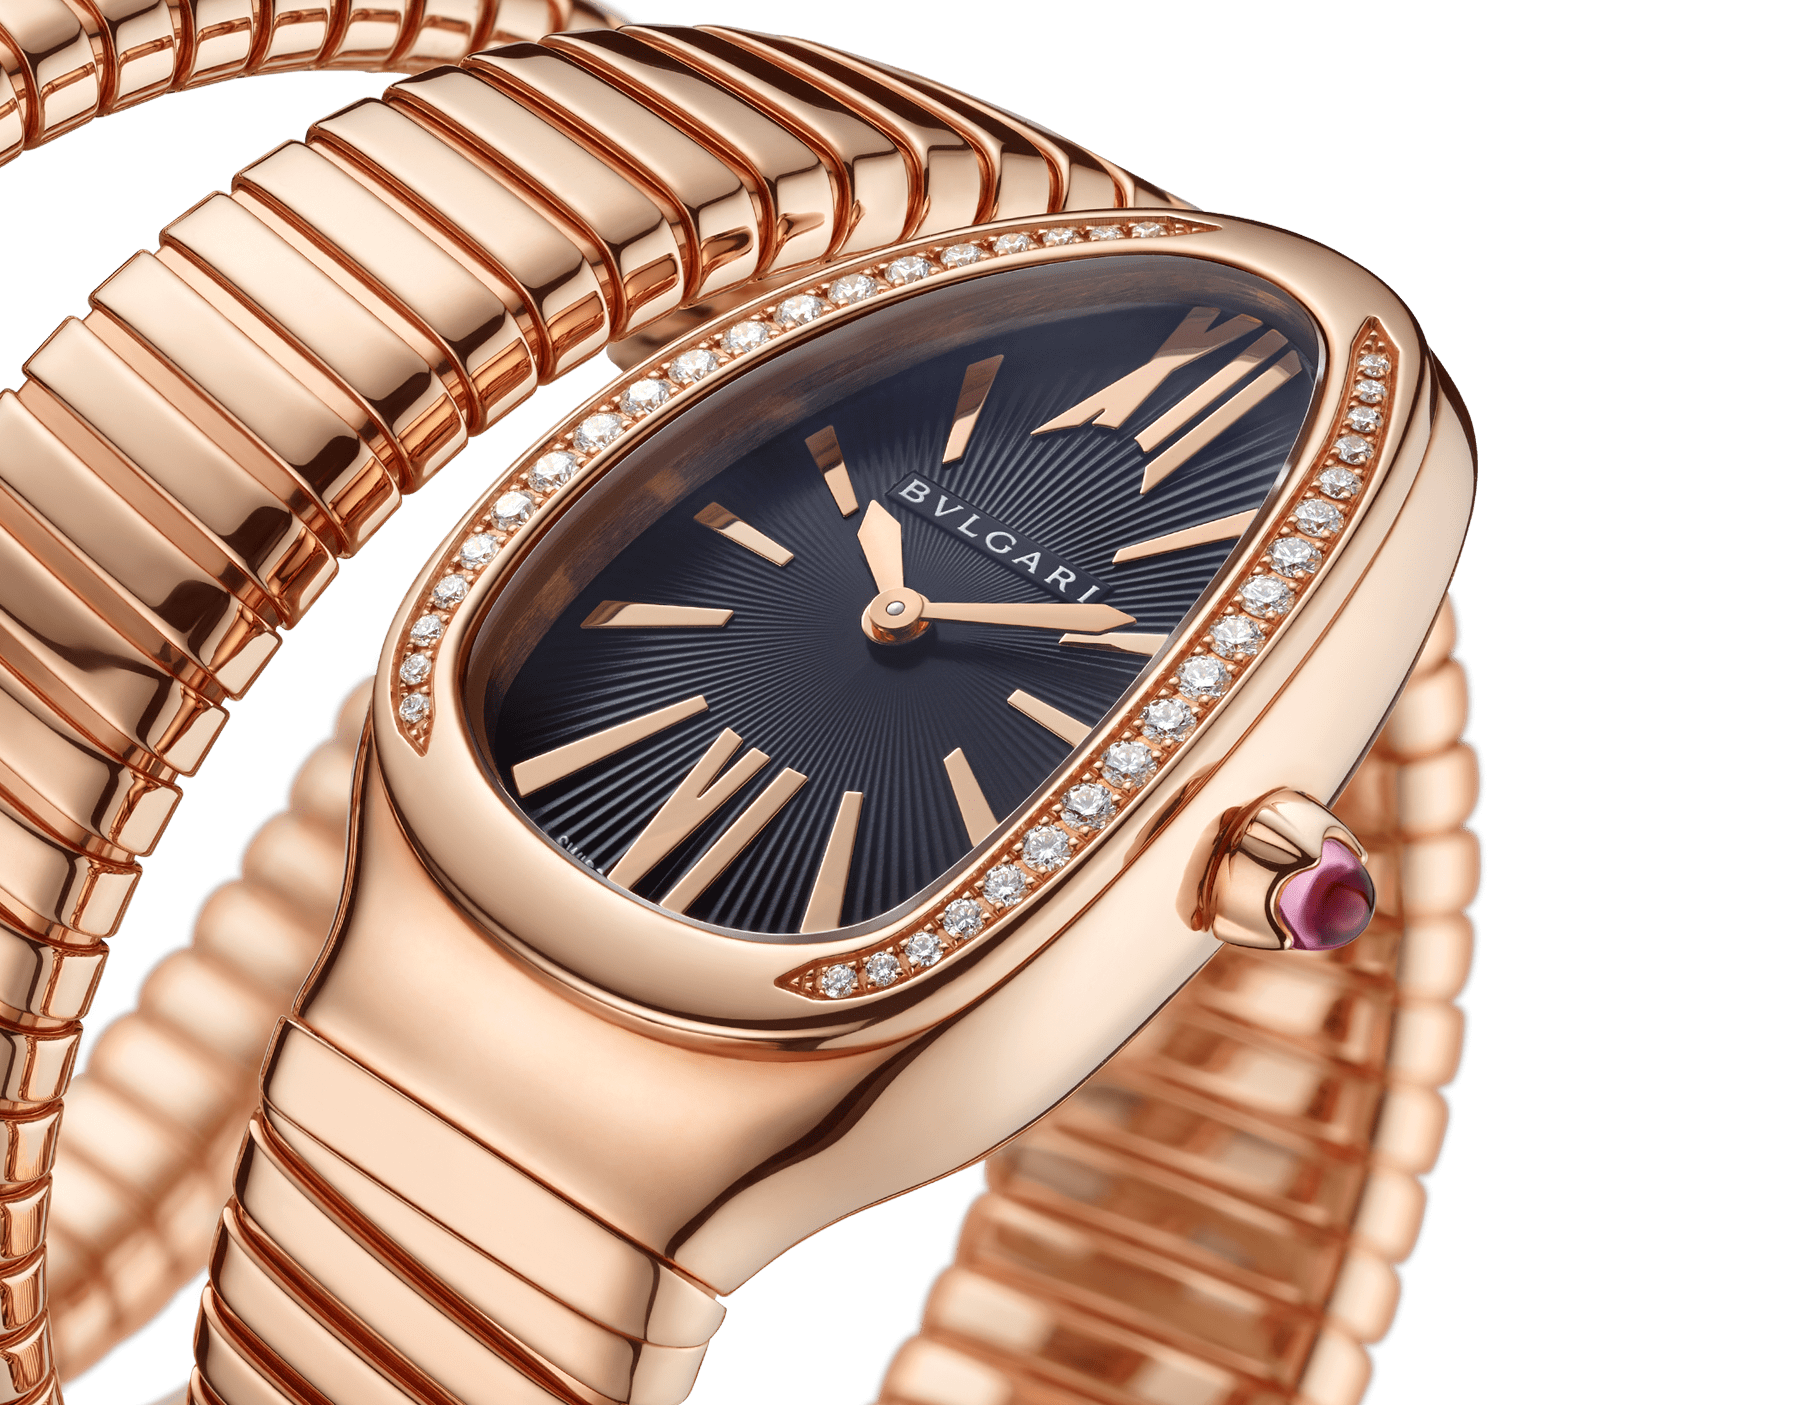 Serpenti Tubogas double spiral watch with 18 kt rose gold case set with brilliant cut diamonds, black opaline dial and 18 kt rose gold bracelet. 101814 image 3